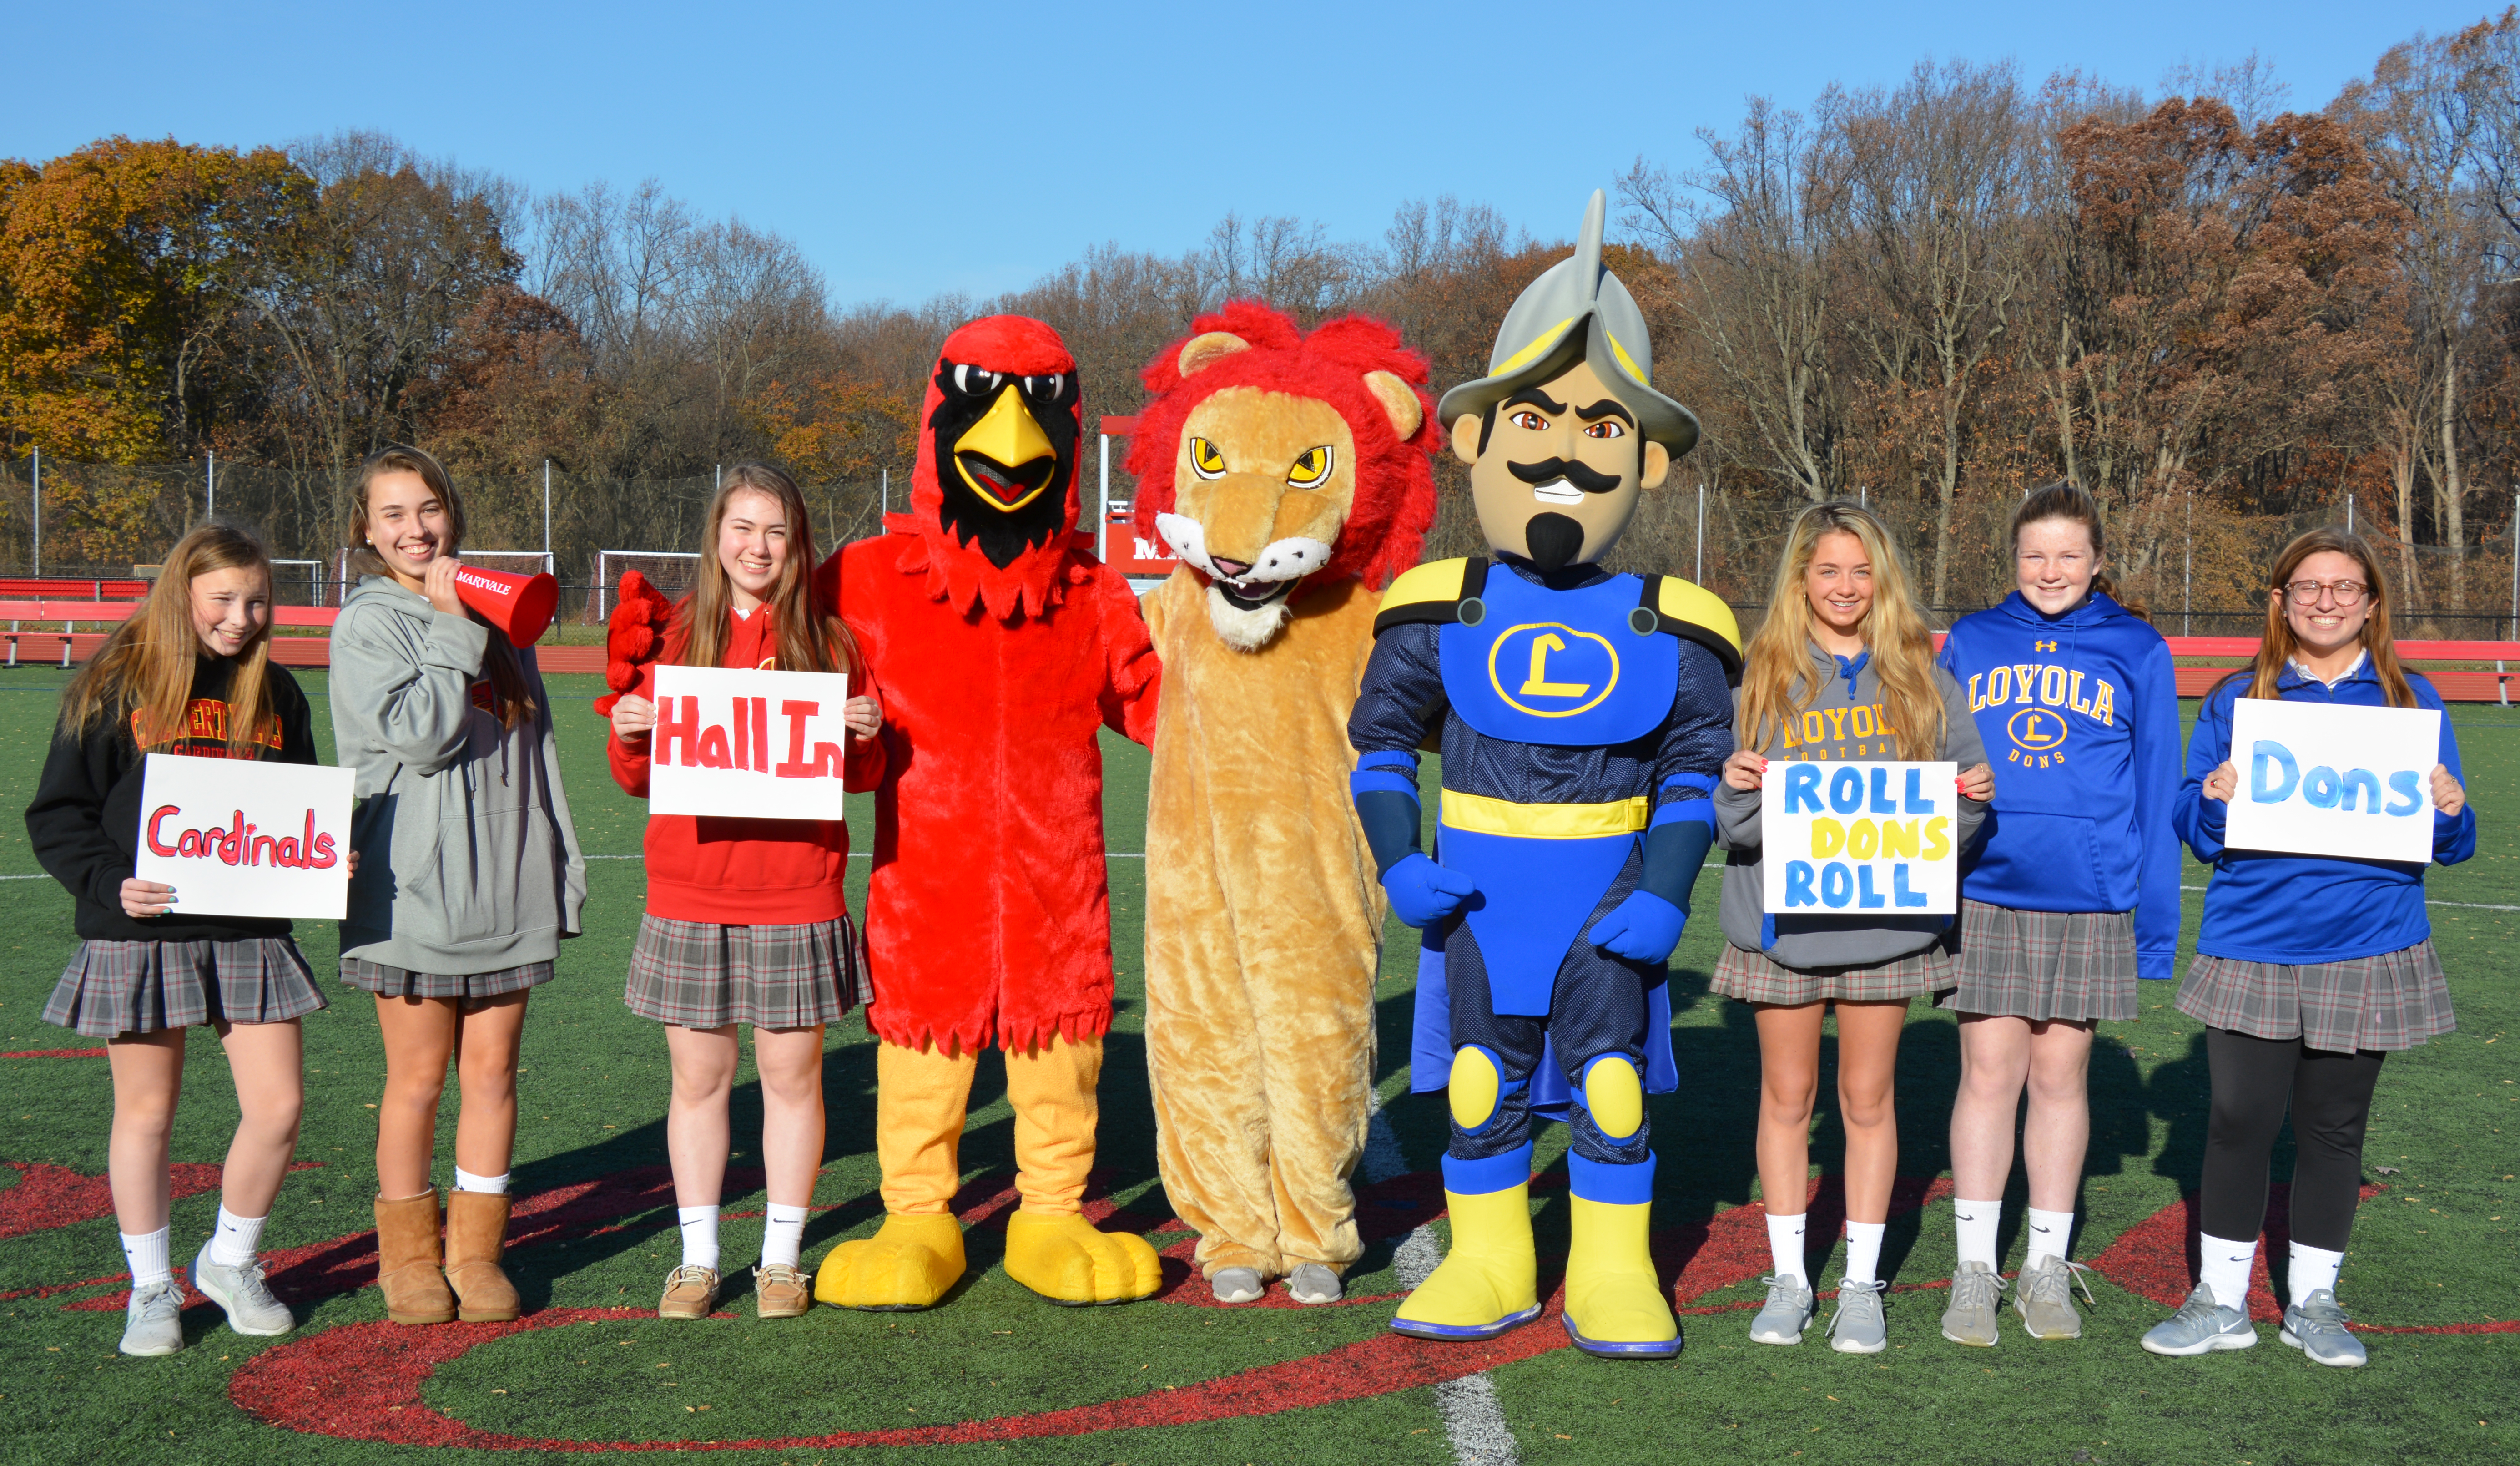 Maryvale wishes Calvert Hall, Loyola Blakefield good luck in today's Turkey Bowl!